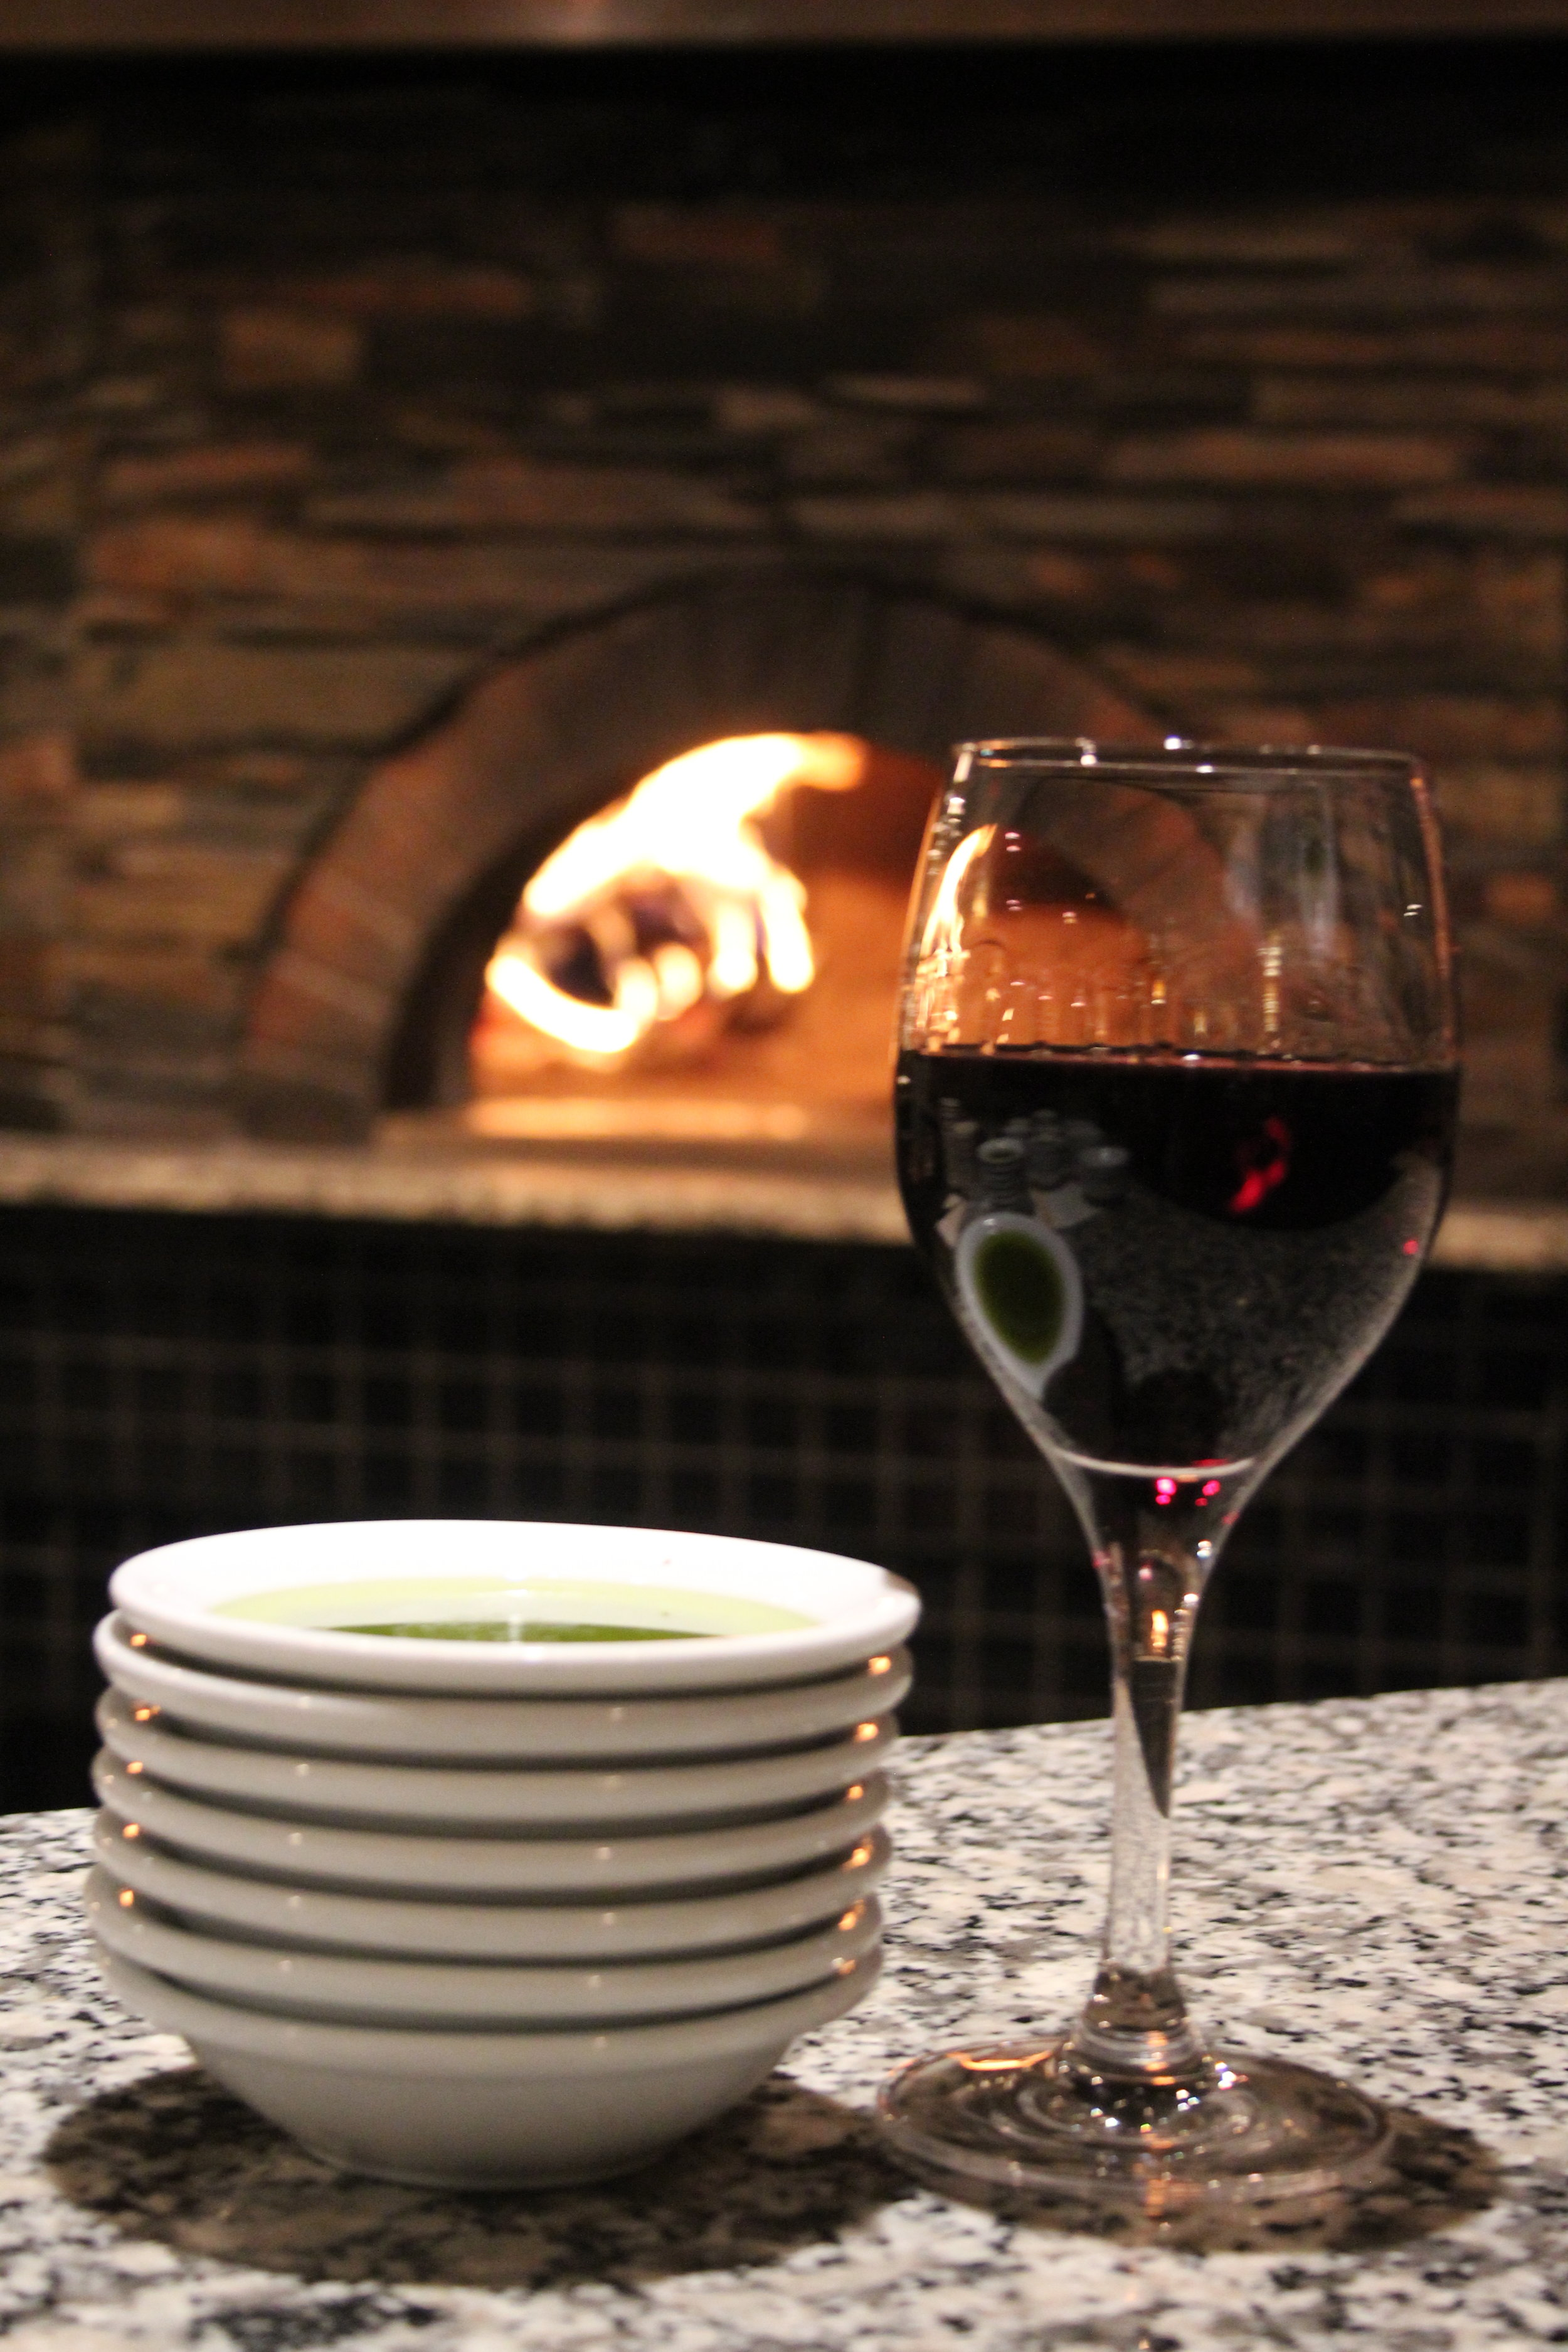 Wine glass next to bowl with green liquid with fire in the background.JPG